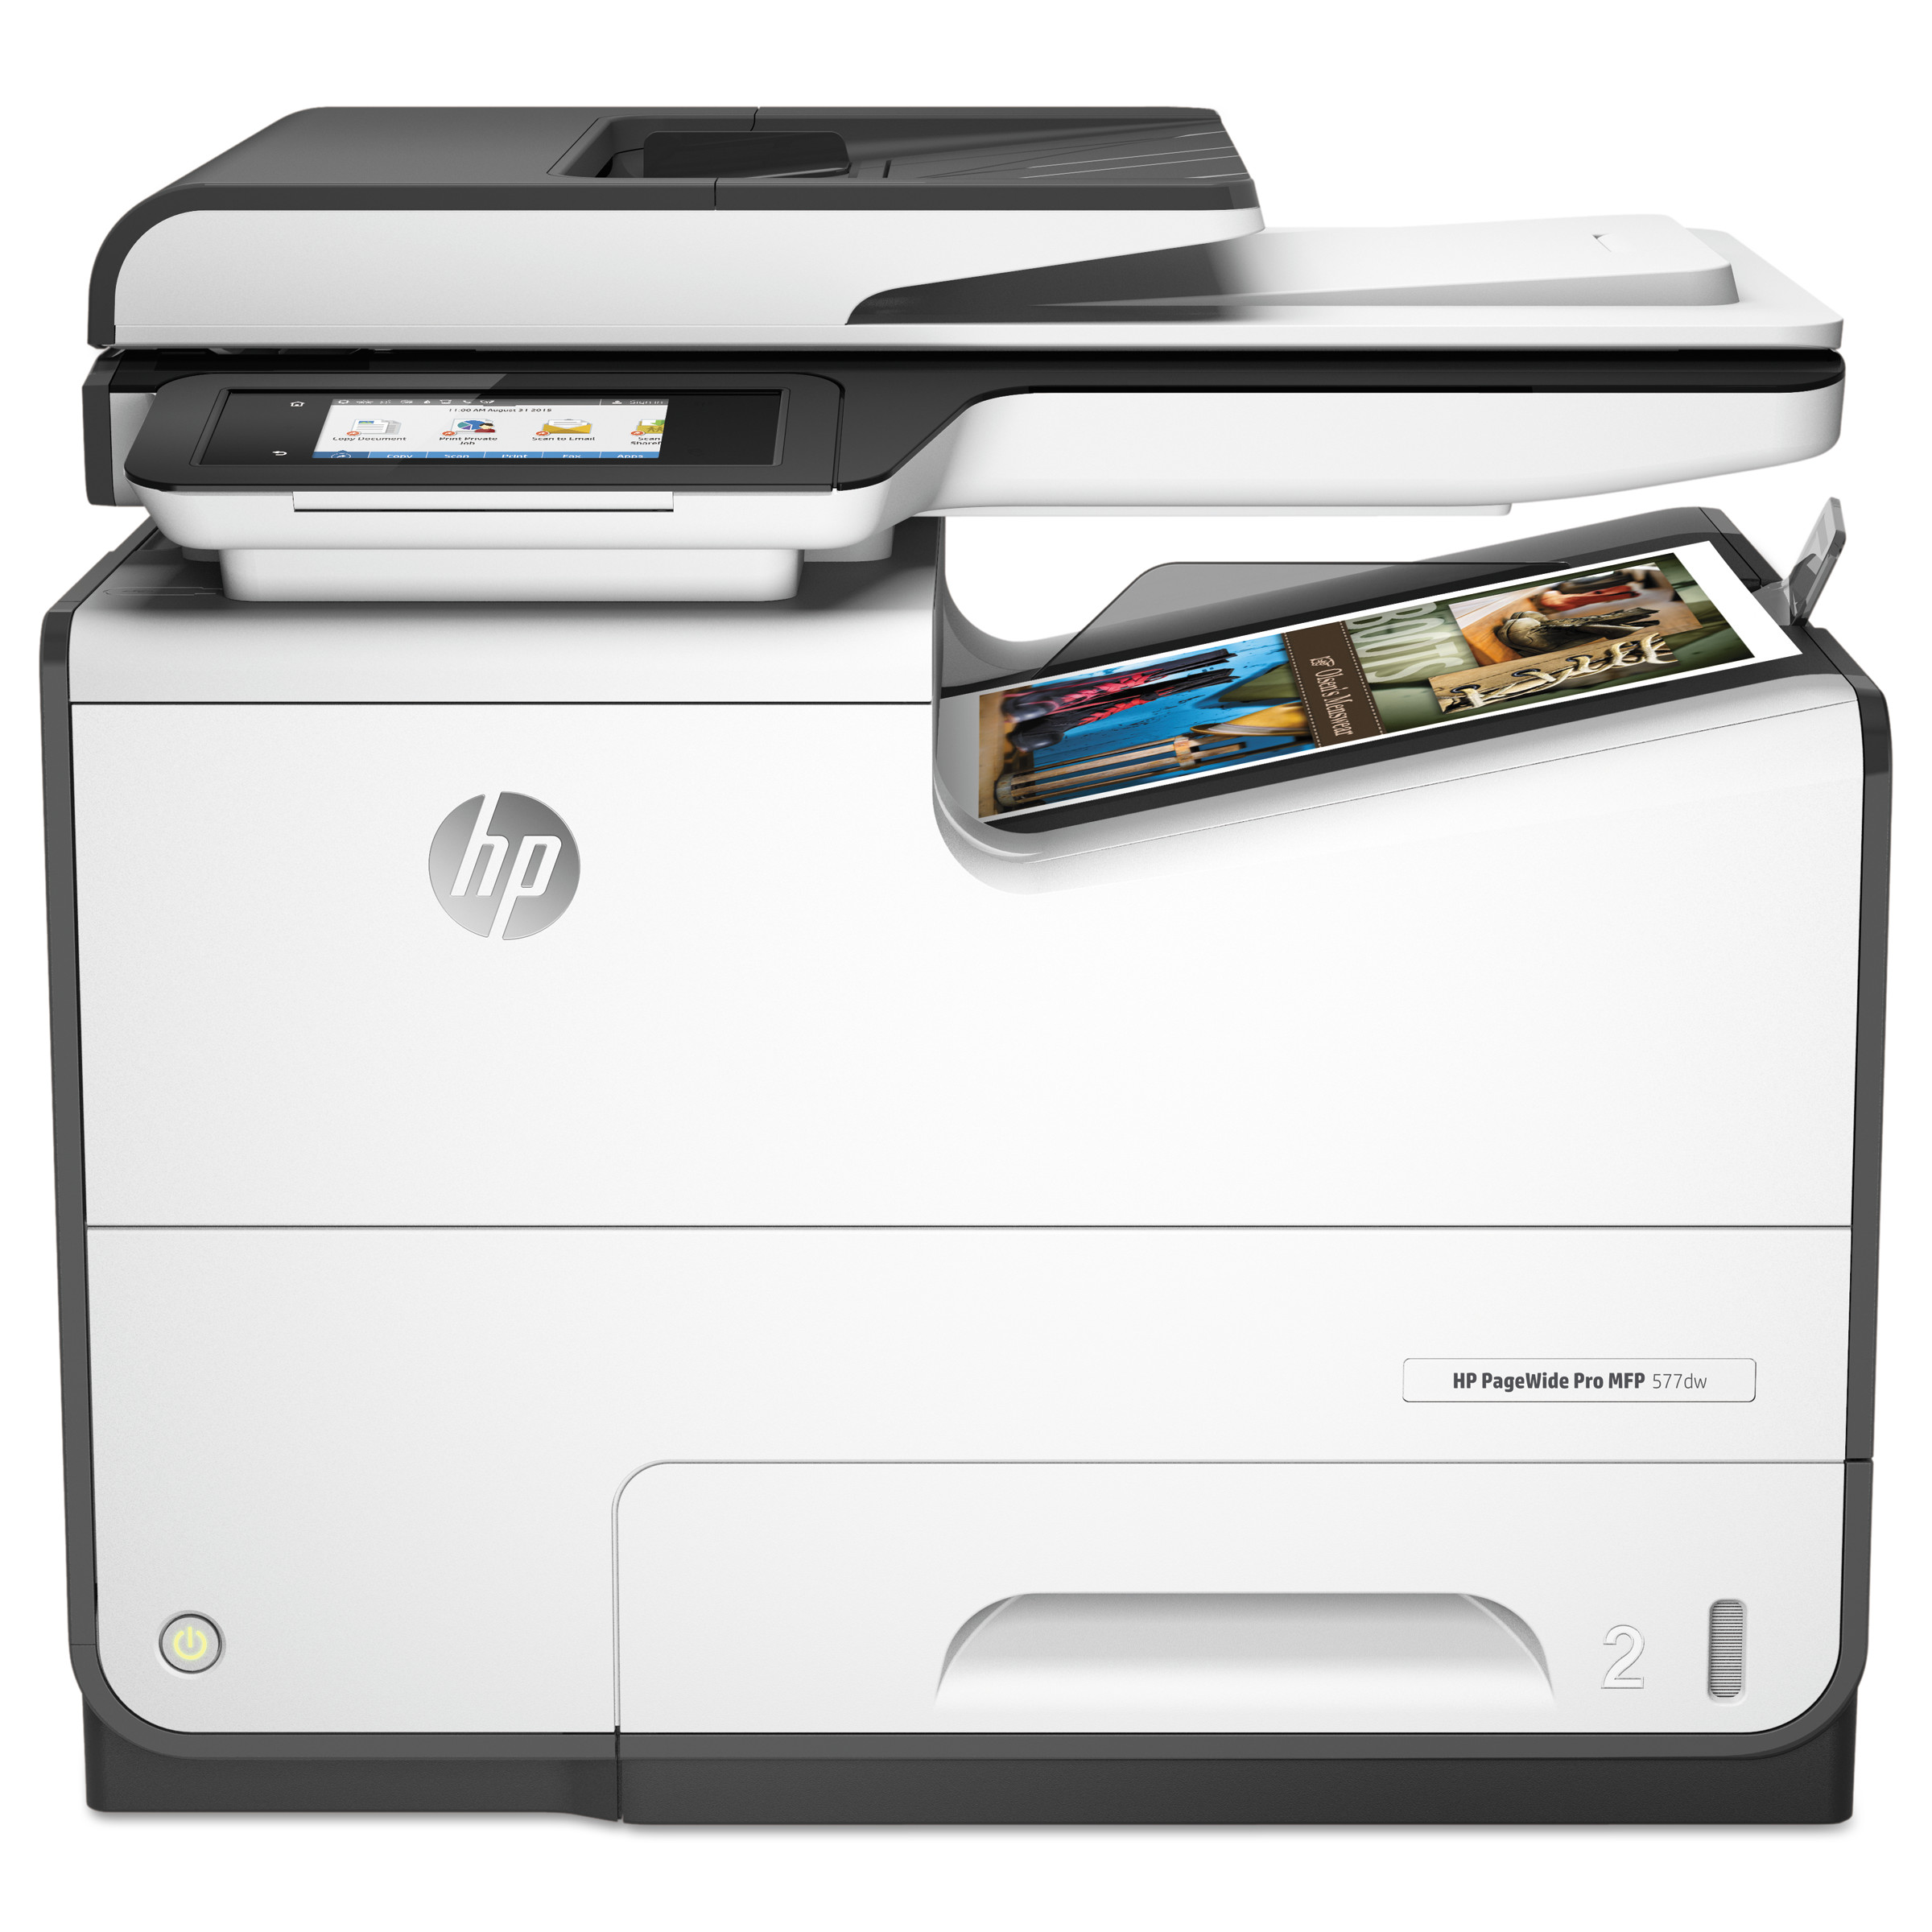 HP PageWide Pro 577dw Multifunction Printer, Copy Fax Print Scan by HP